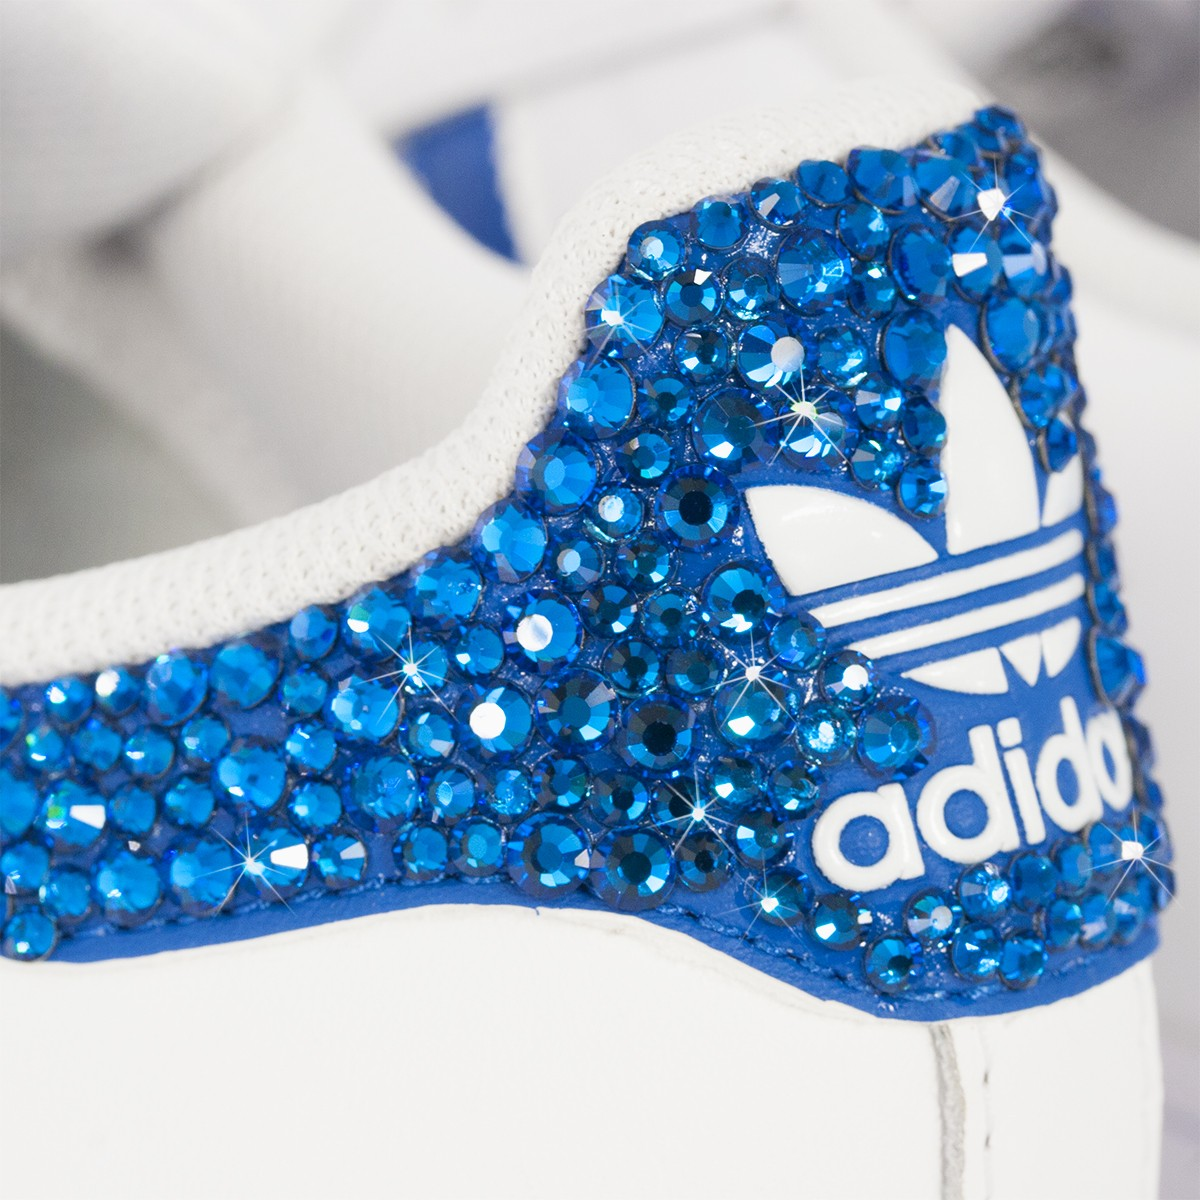 160be427be3a6 ... Scarpe Adidas Super Star 3 Stripes Ray Blue con Strass ...